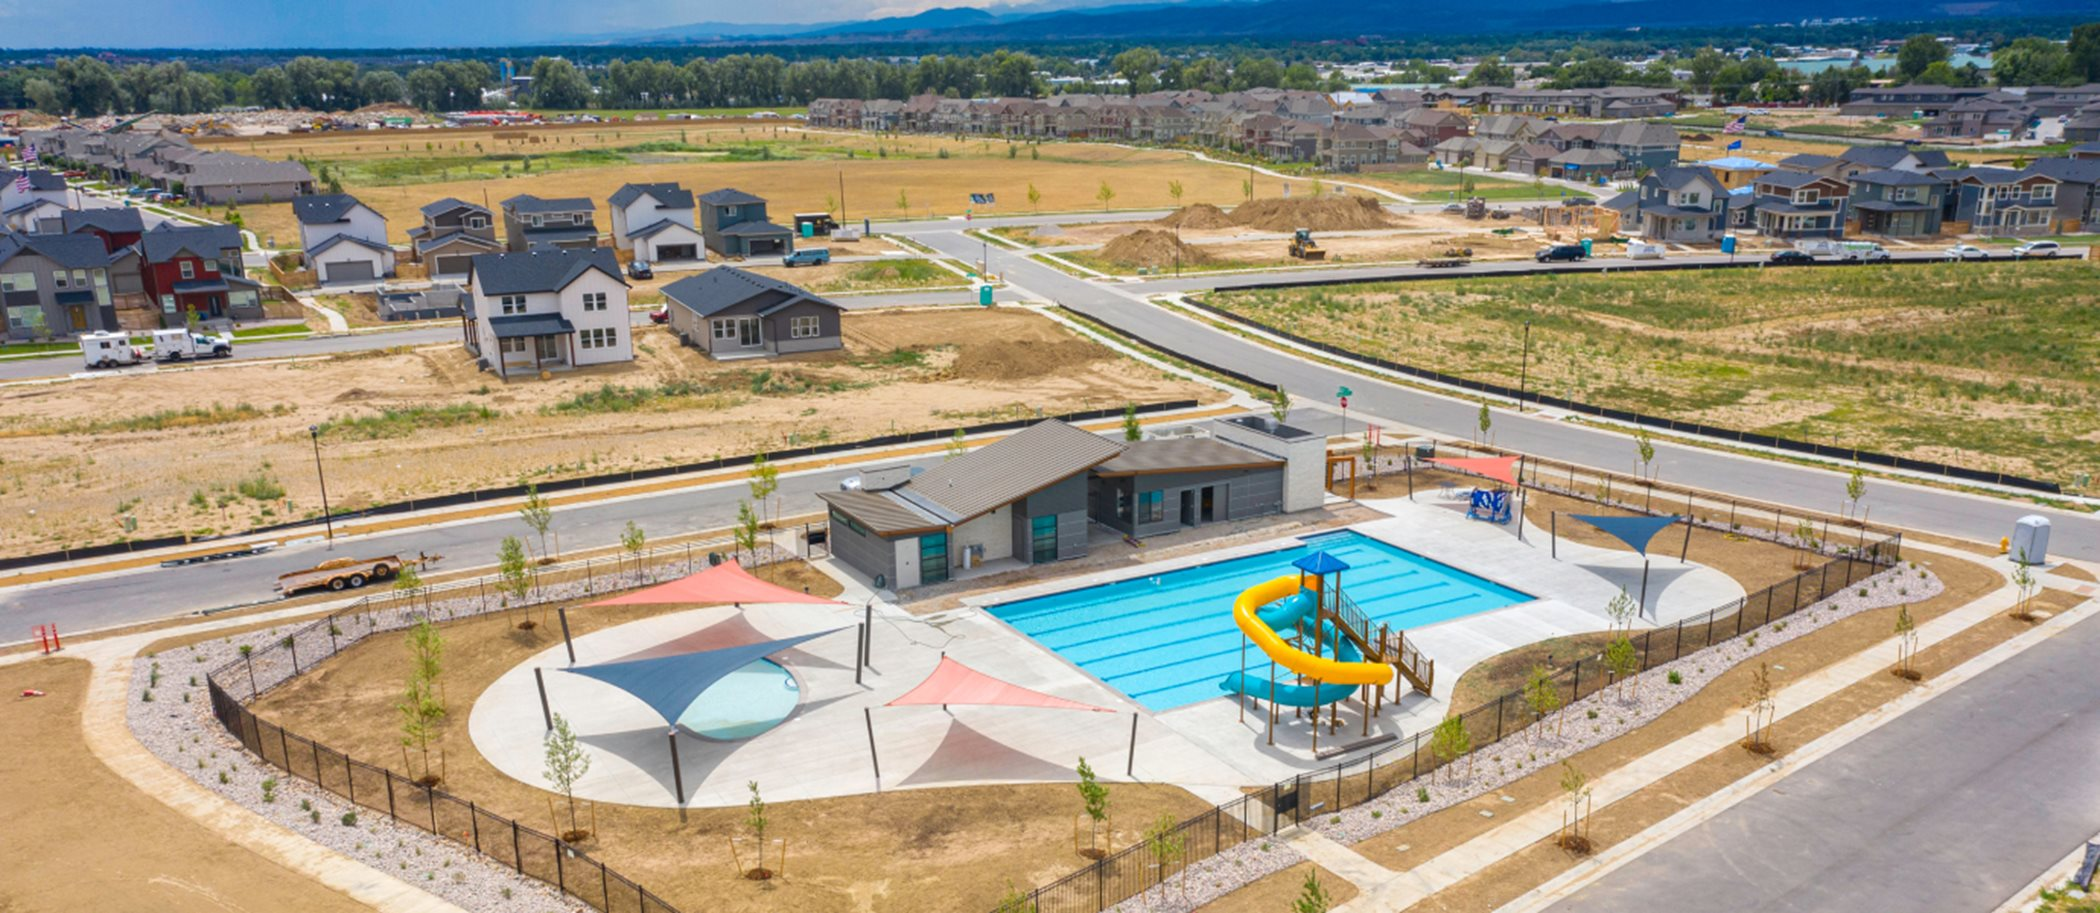 Aerial view of Mosaic Clubhouse and Swimming Pool